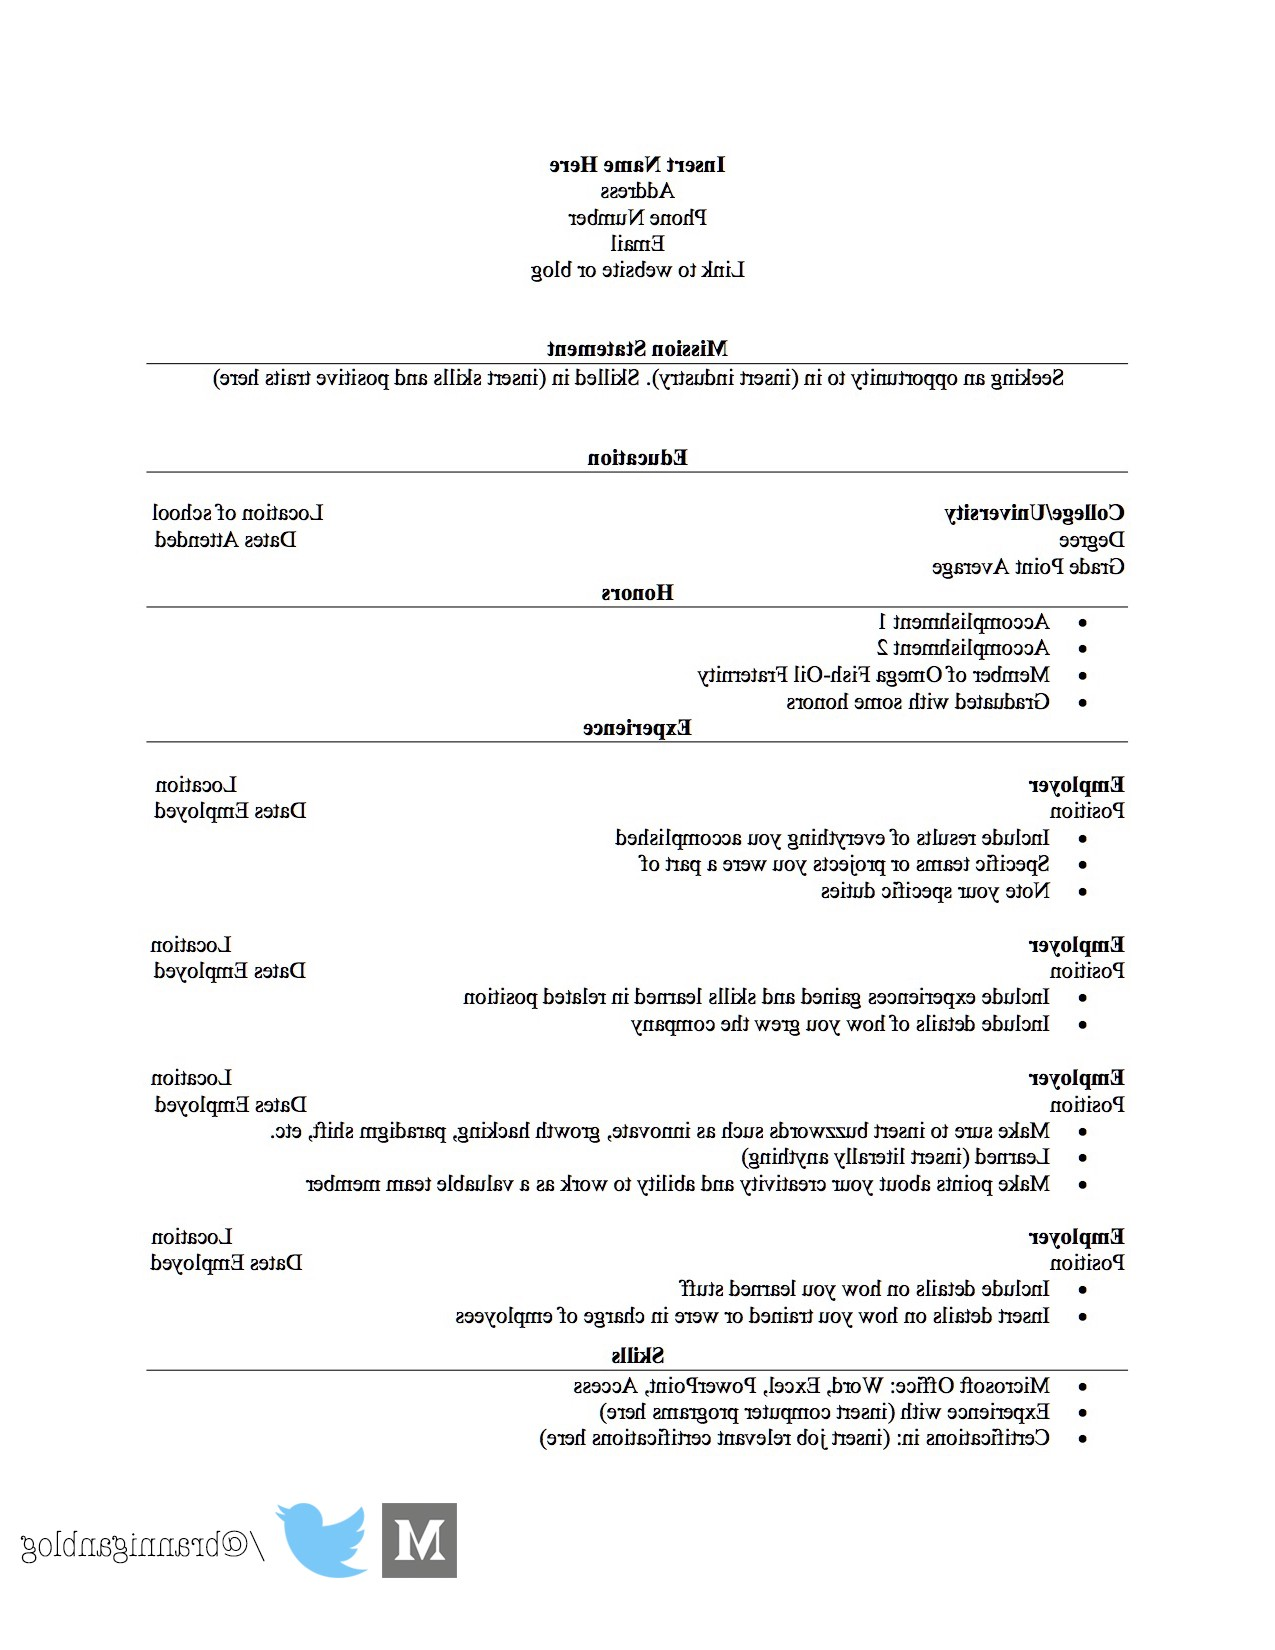 How To Bullshit A Resume If You Have No Experience